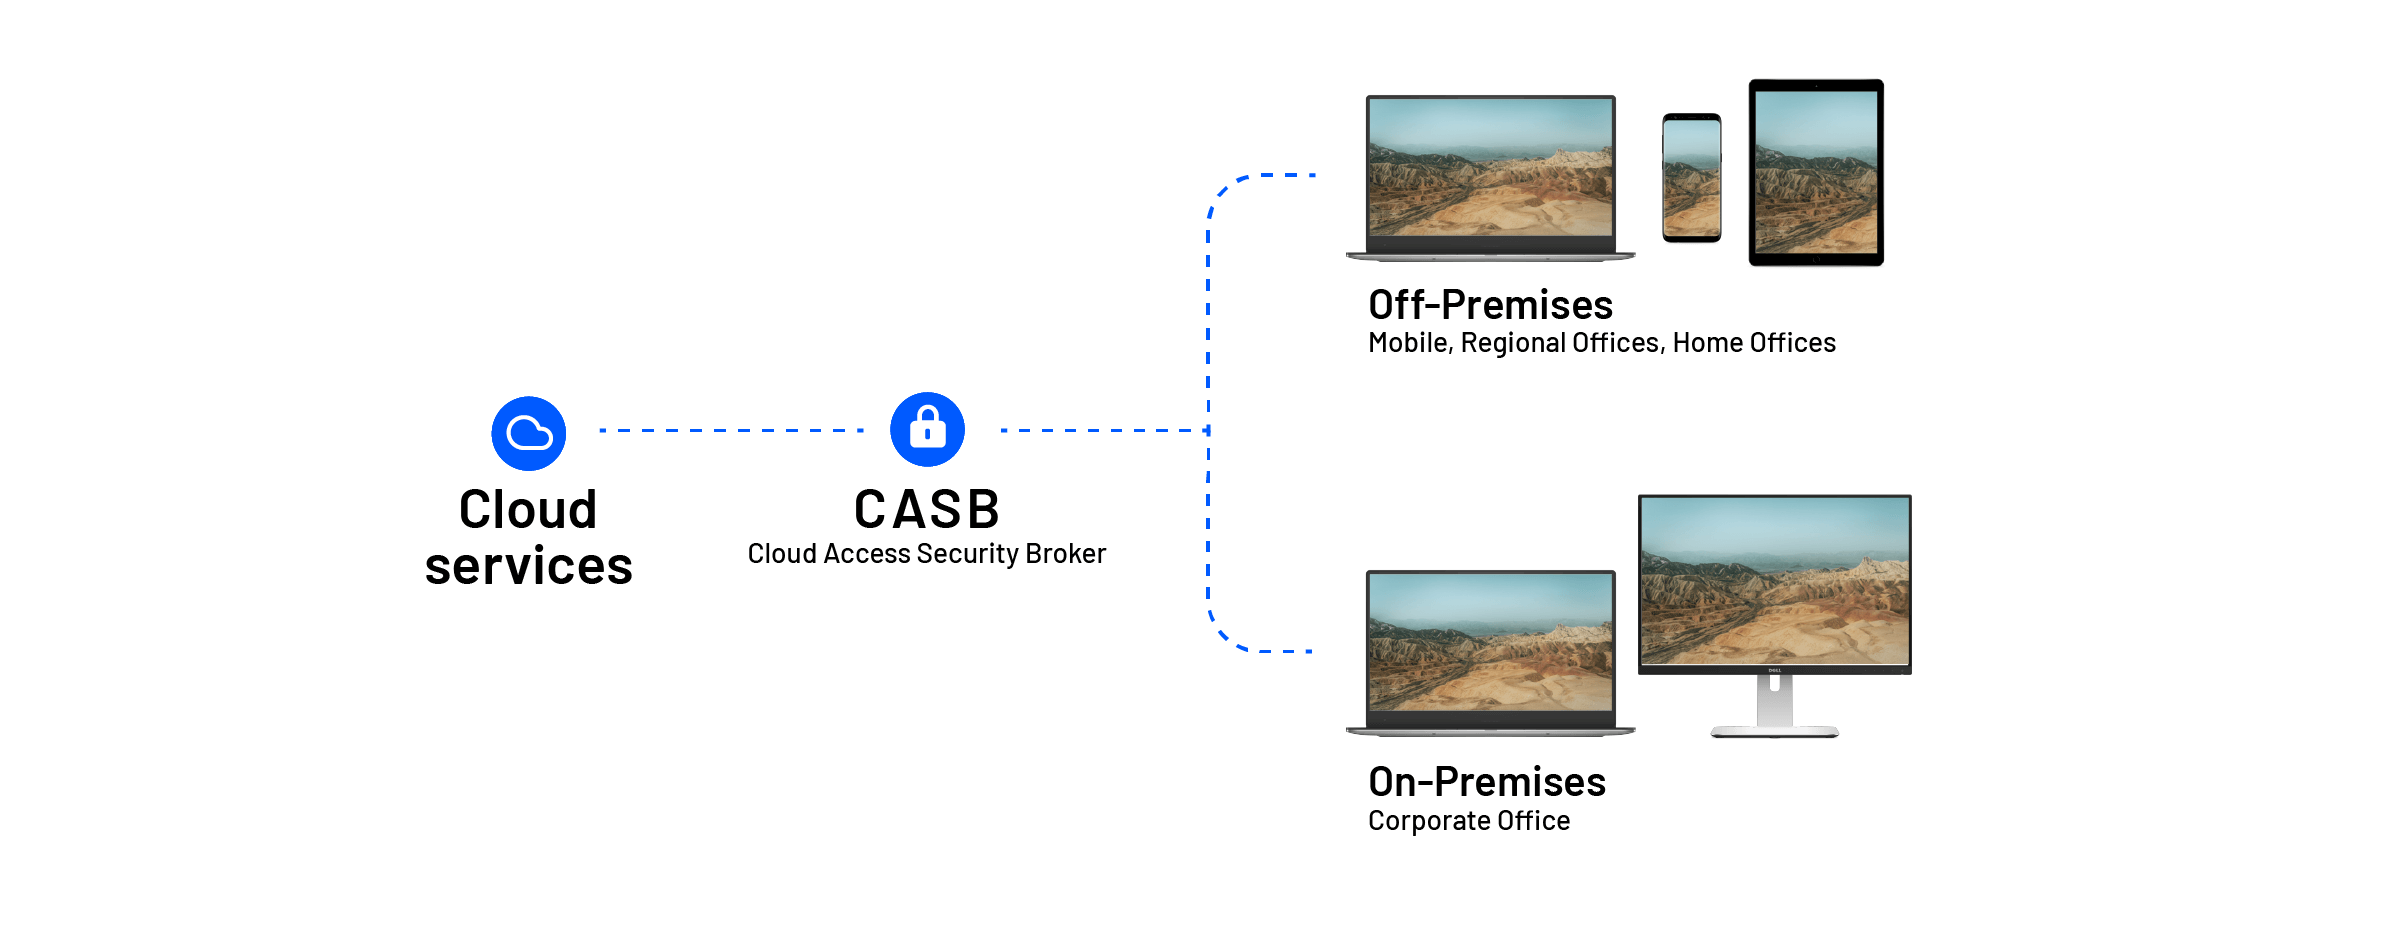 Network security between the cloud service and streaming devices protected by CASB